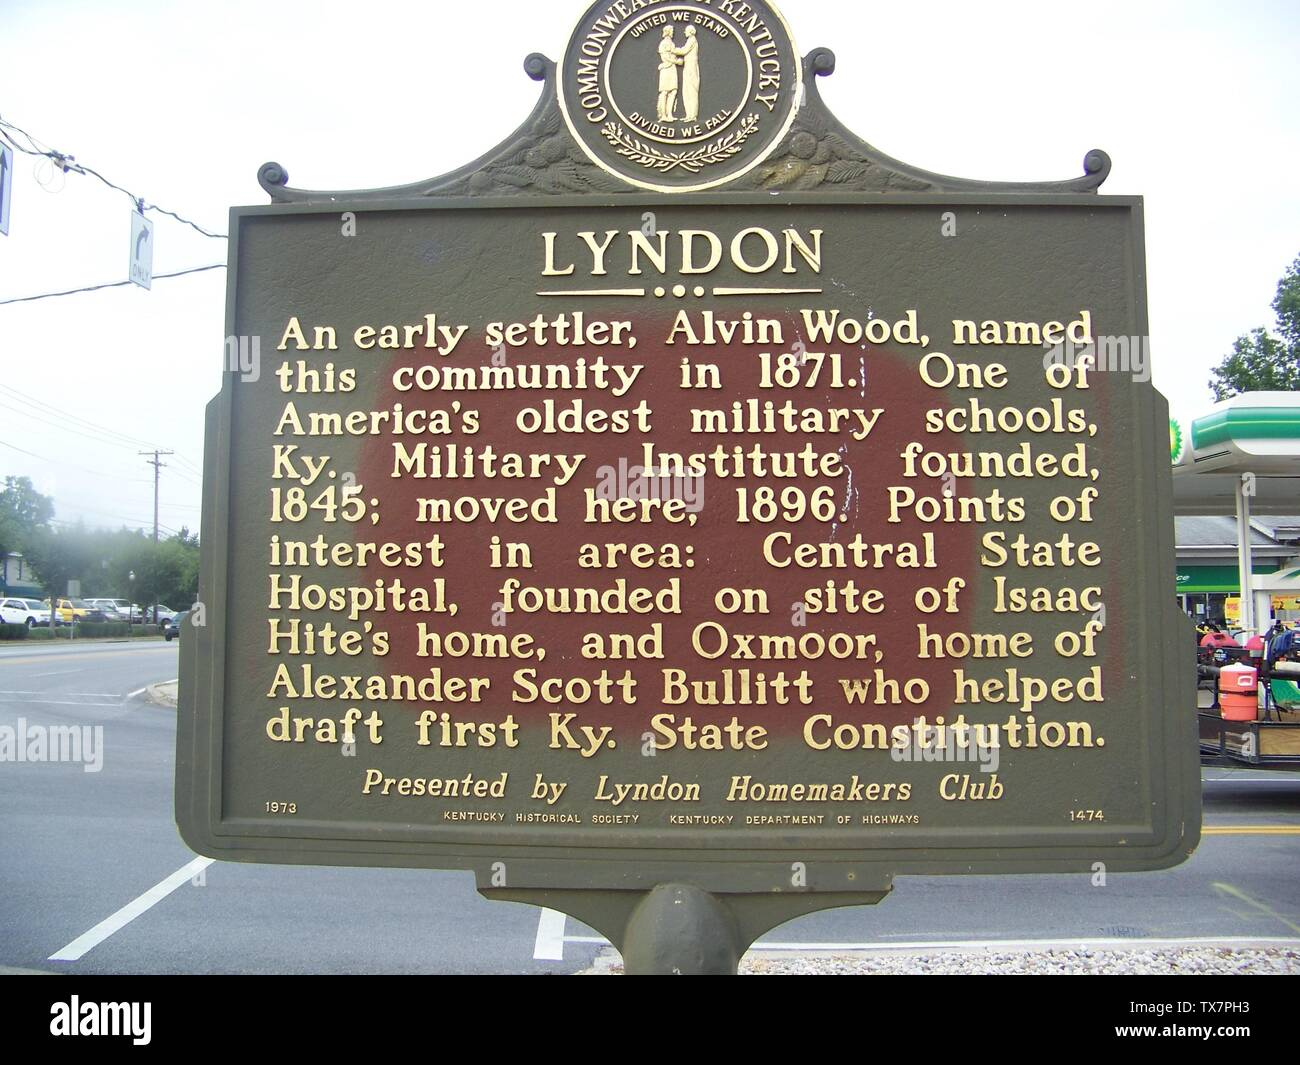 'English: Commonwealth of Kentucky Historical marker reads: Lyndon An early settler, Alvin Wood, named this community in 1871. One of America's oldest military schools, Ky. Military Institute founded, 1845; moved here , 1896. Points of interest in area: Central State Hospital, founded on site of Isaac Hite's home, and Oxmoor, home of Alexander Scott Bullitt who helped draft first Ky State Constitution.  Presented by Lyndon Homemakers Club  1973 - Kentucky Historical Society - Kentucky Department of Highways - 1474; 21 August 2008; Own work (Original text:  I created this work entirely by mysel - Stock Image